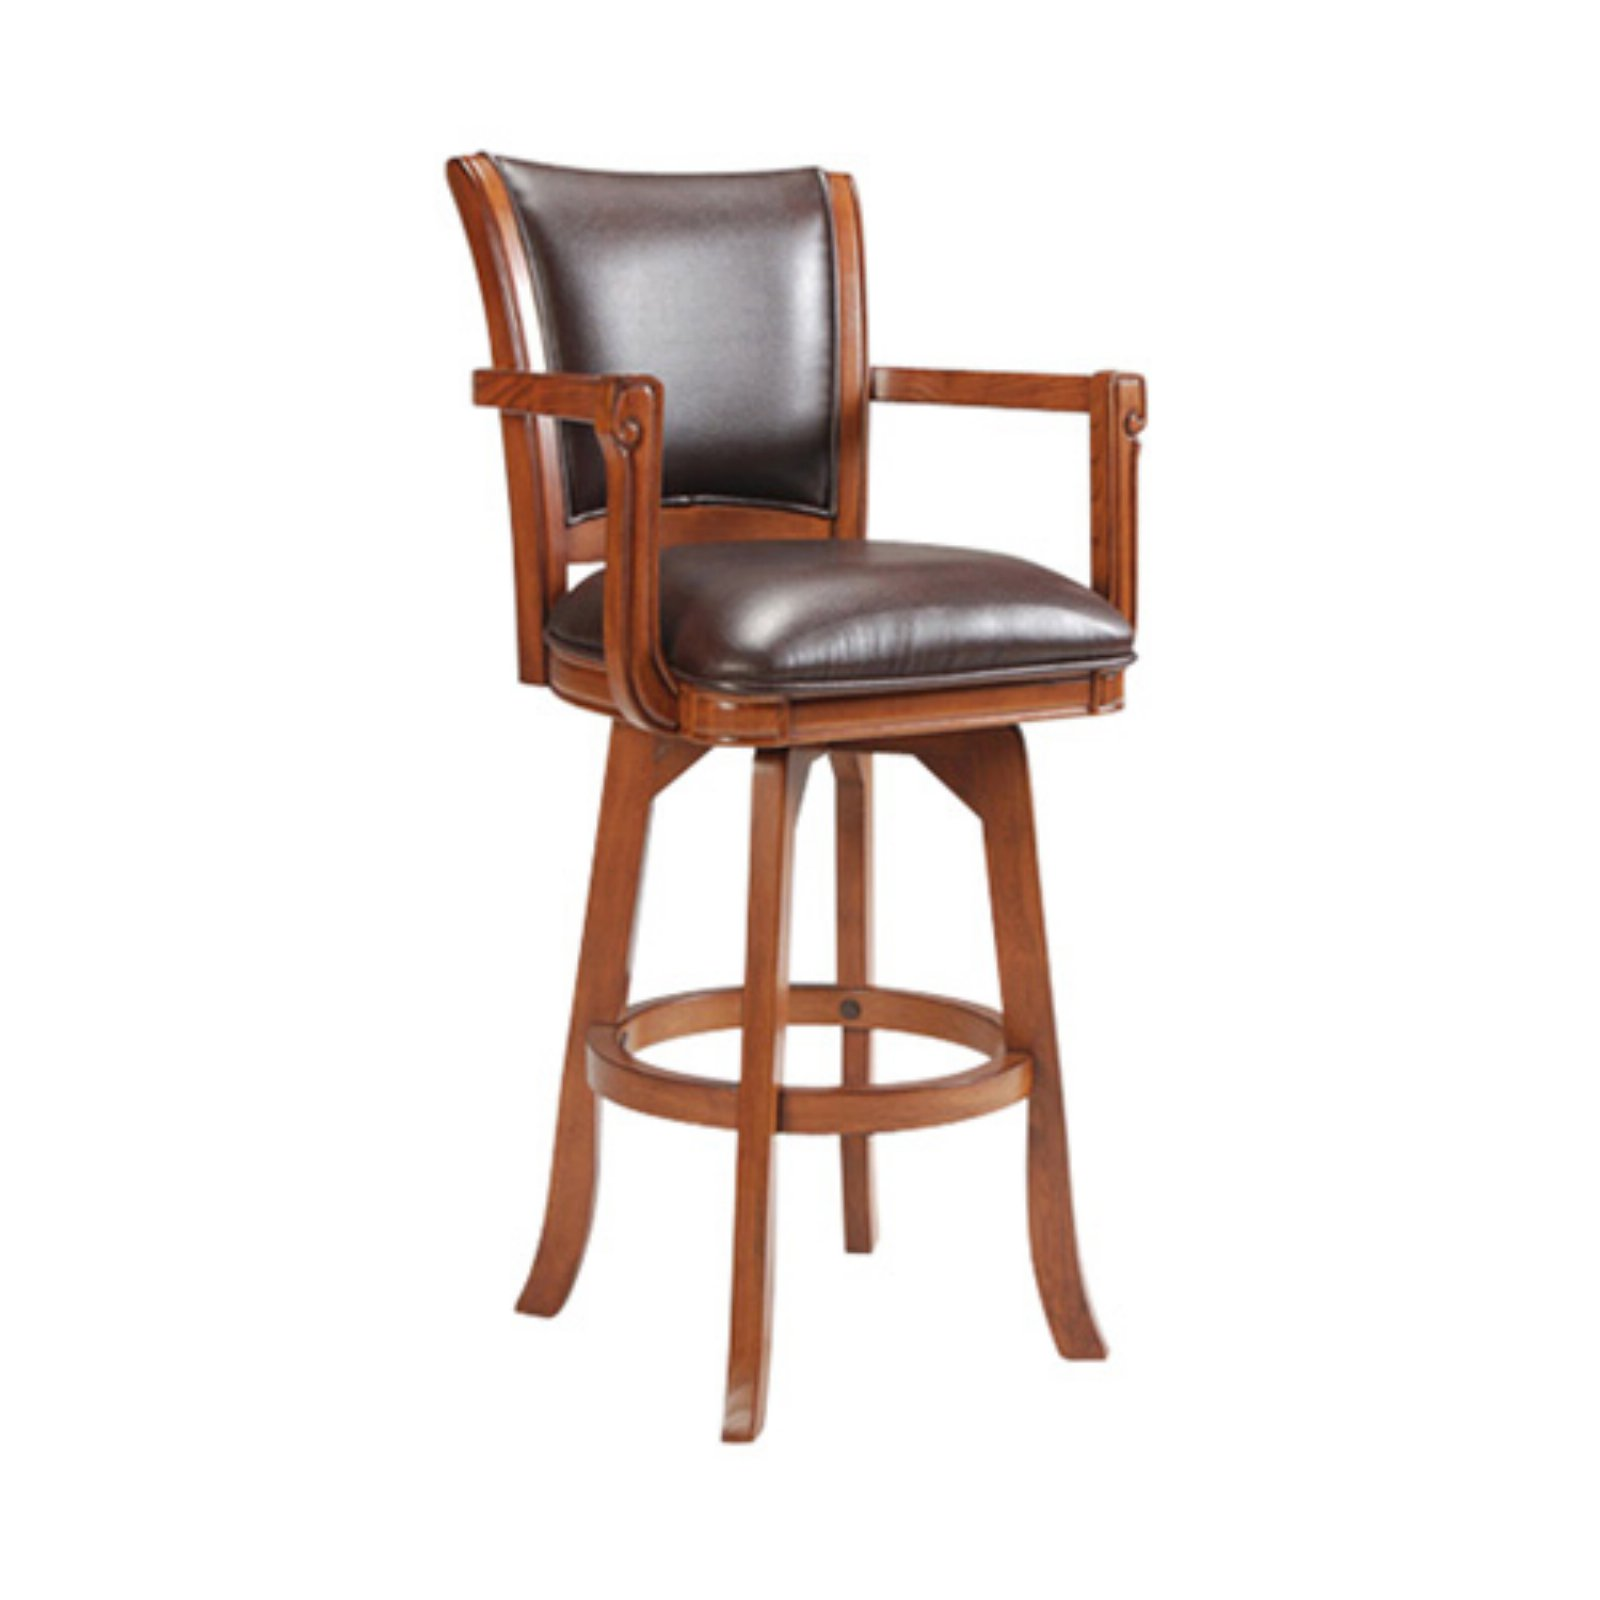 Park View Swivel Bar Stool, Medium Brown Oak Finish